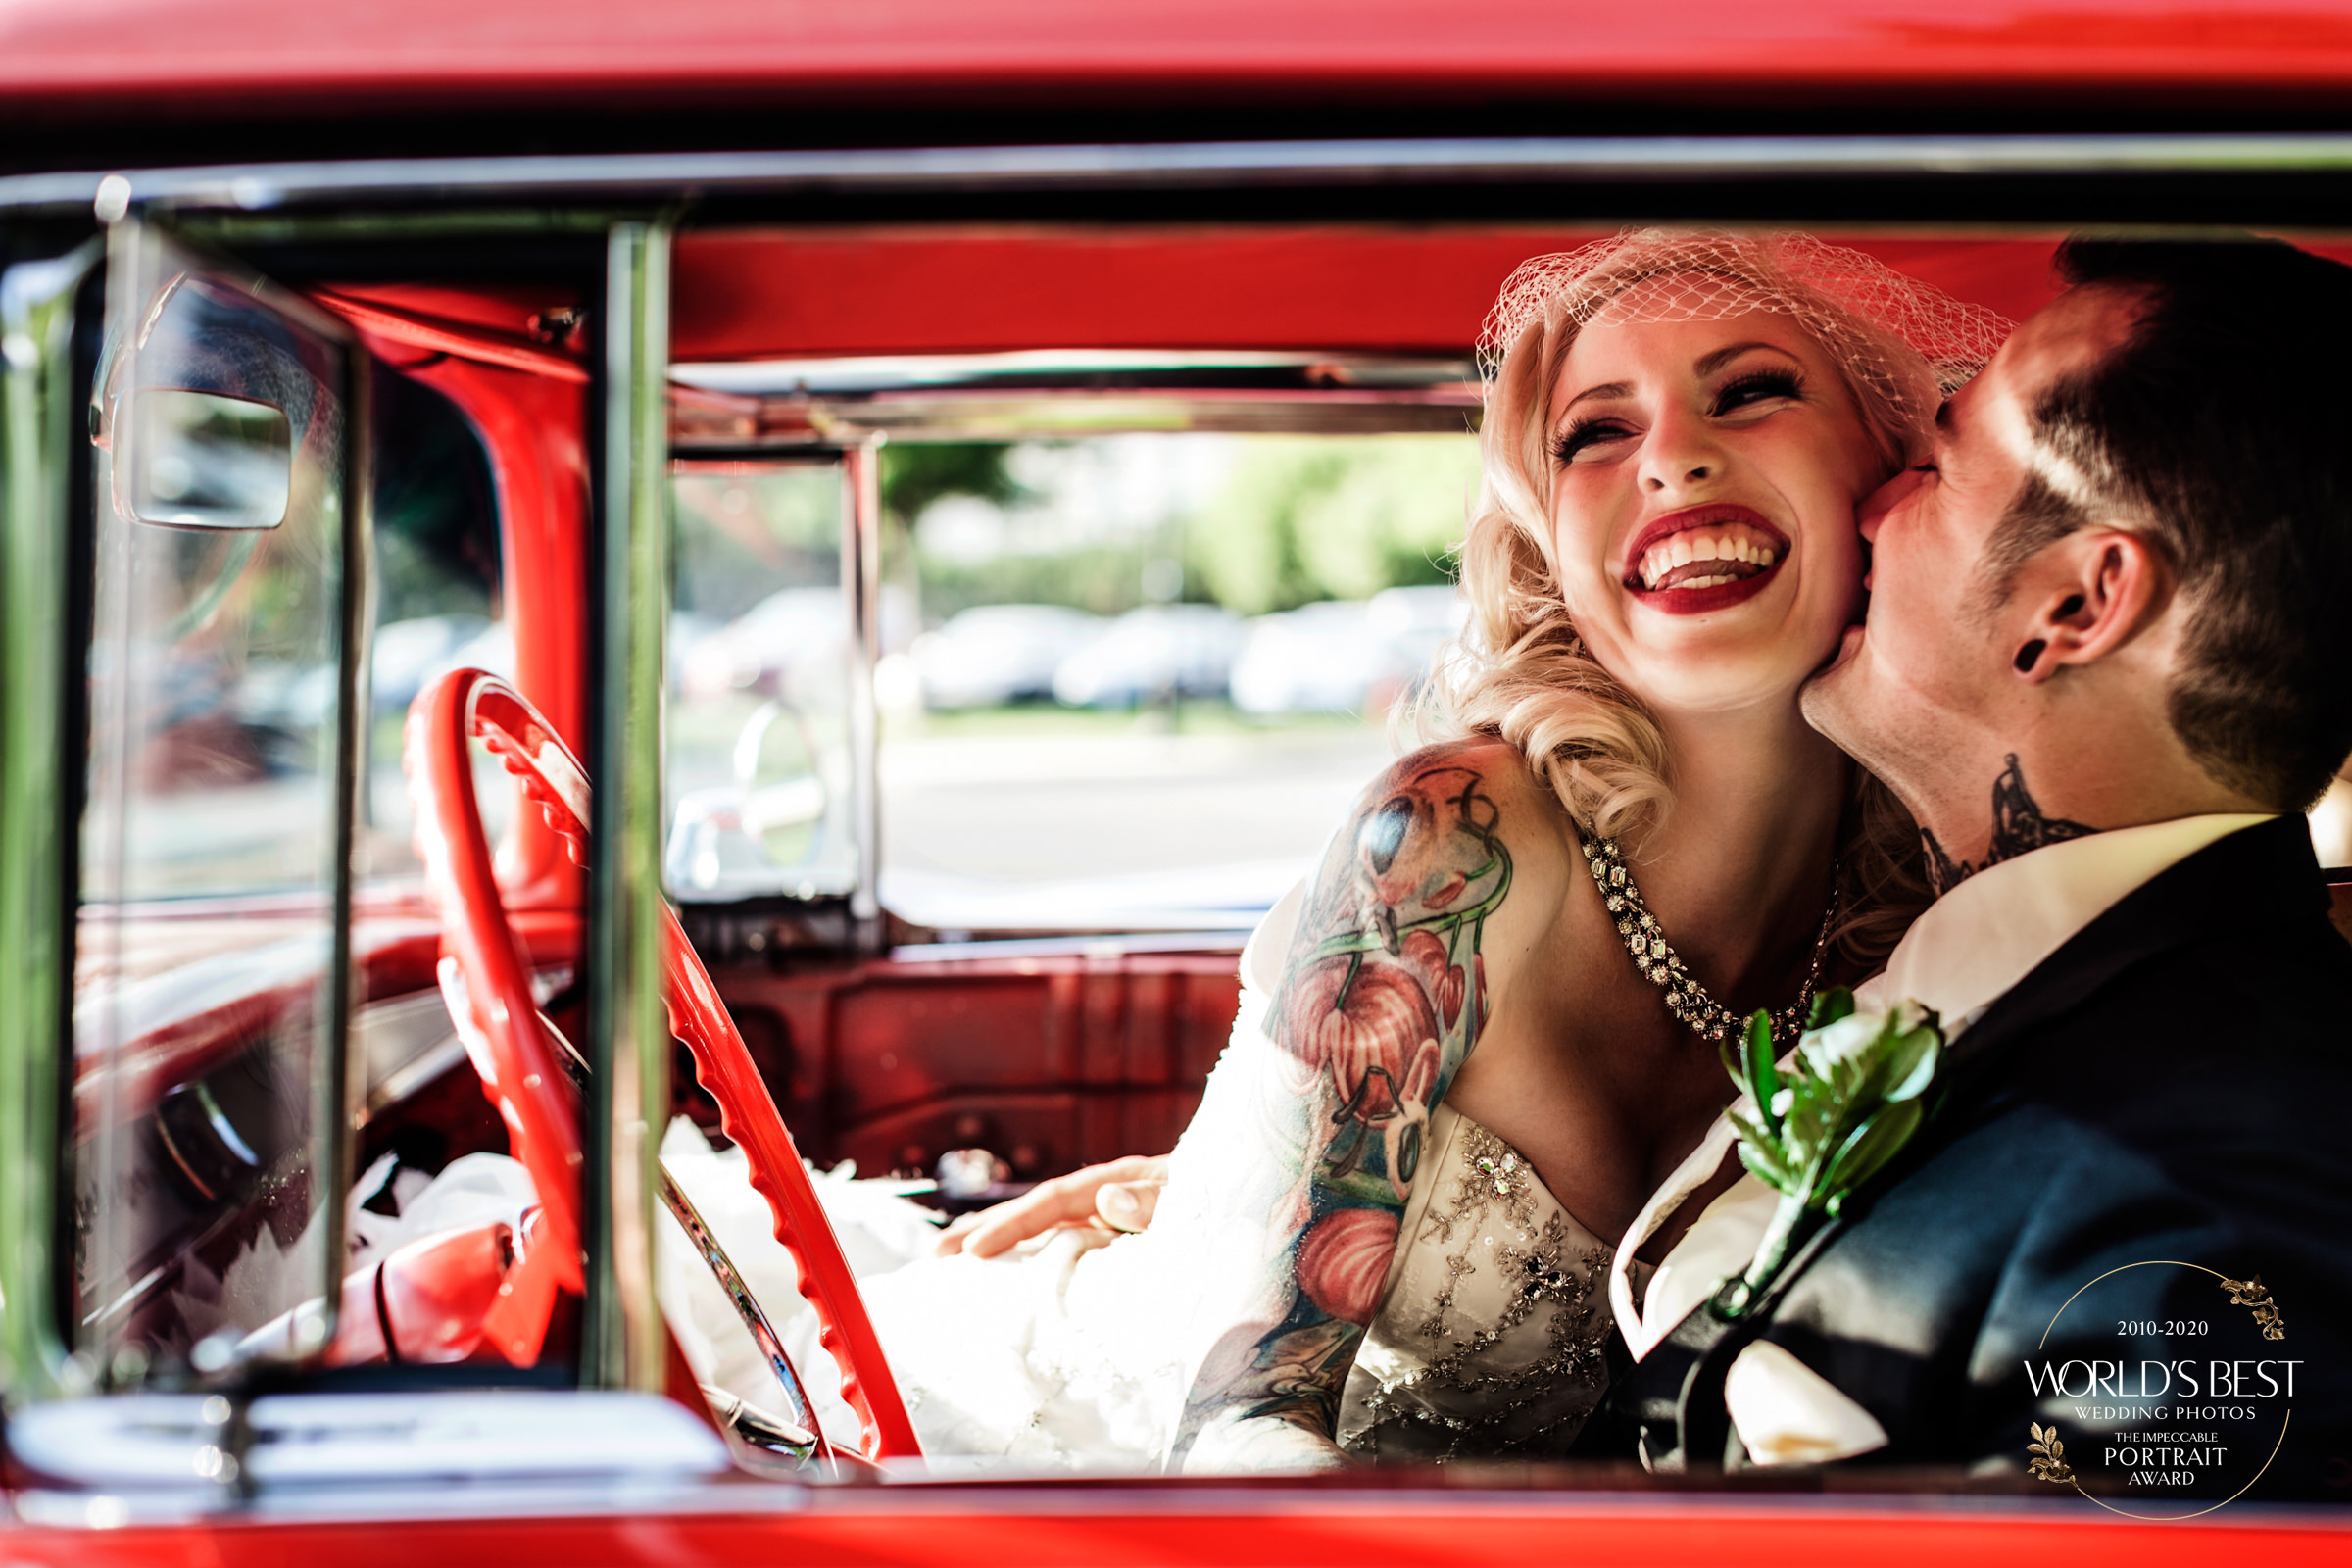 tattoed-bride-laughing-portrait-best-wedding-photo-decade-by-jagstudios